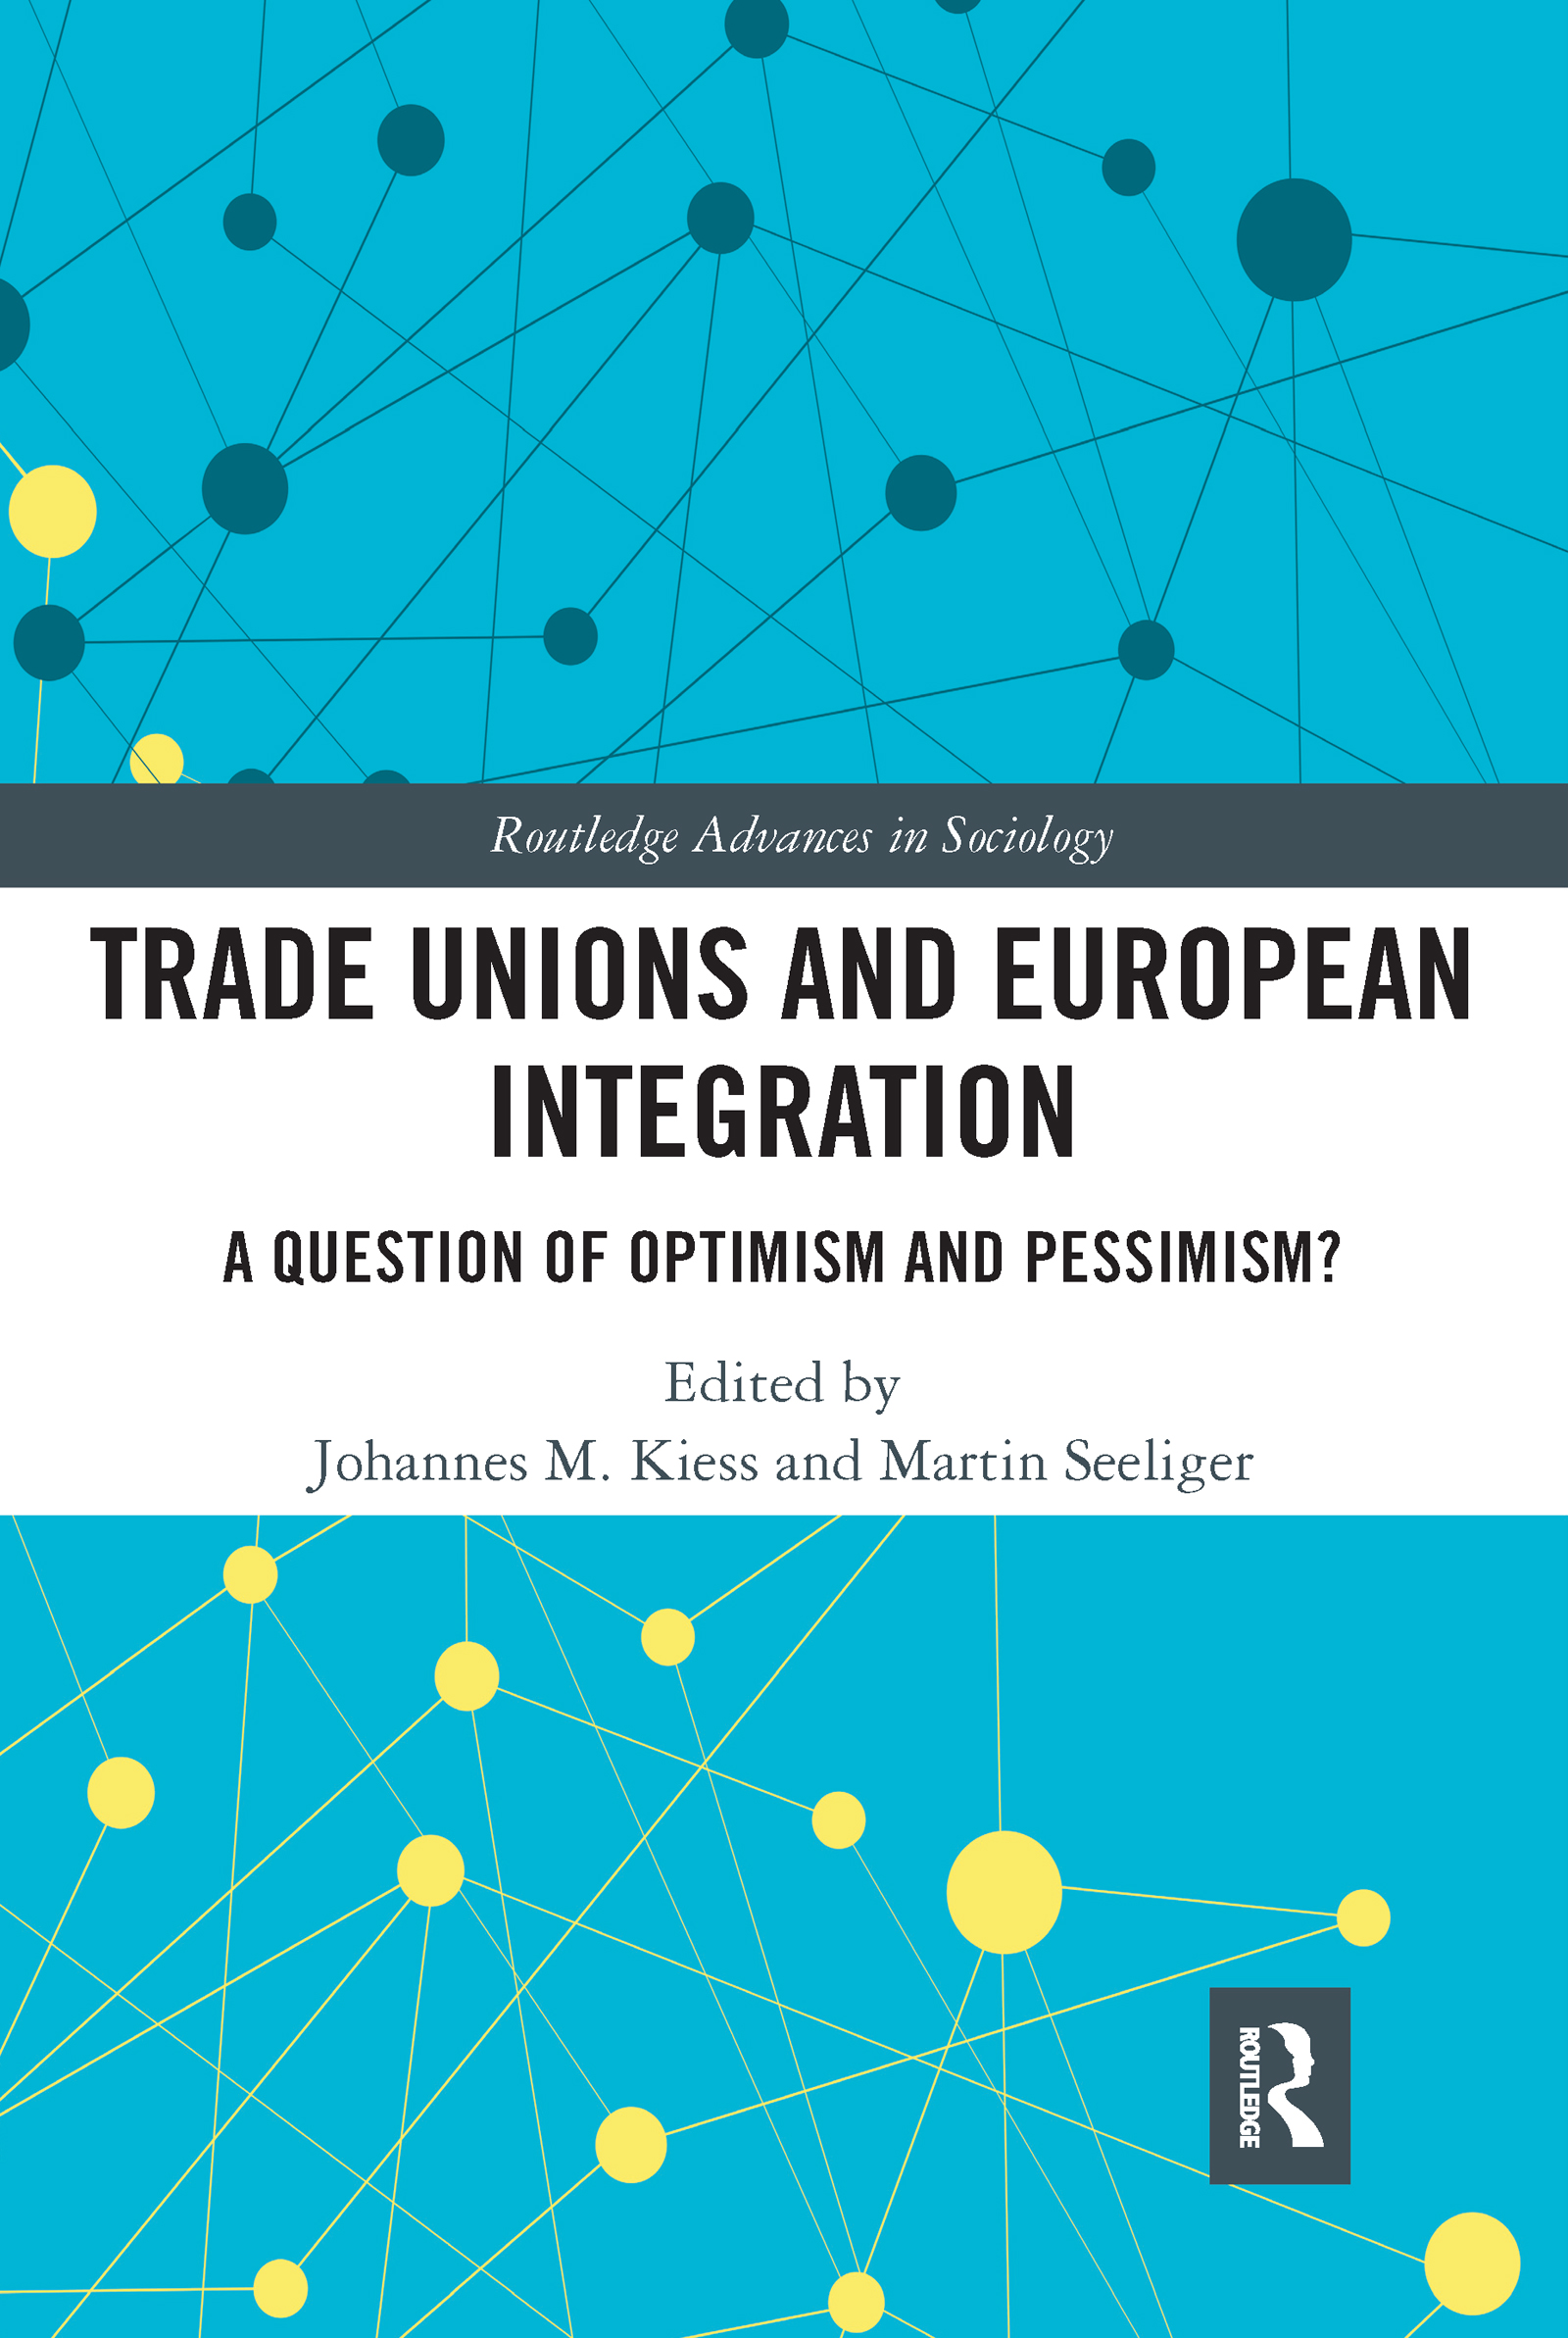 Trade Unions and European Integration